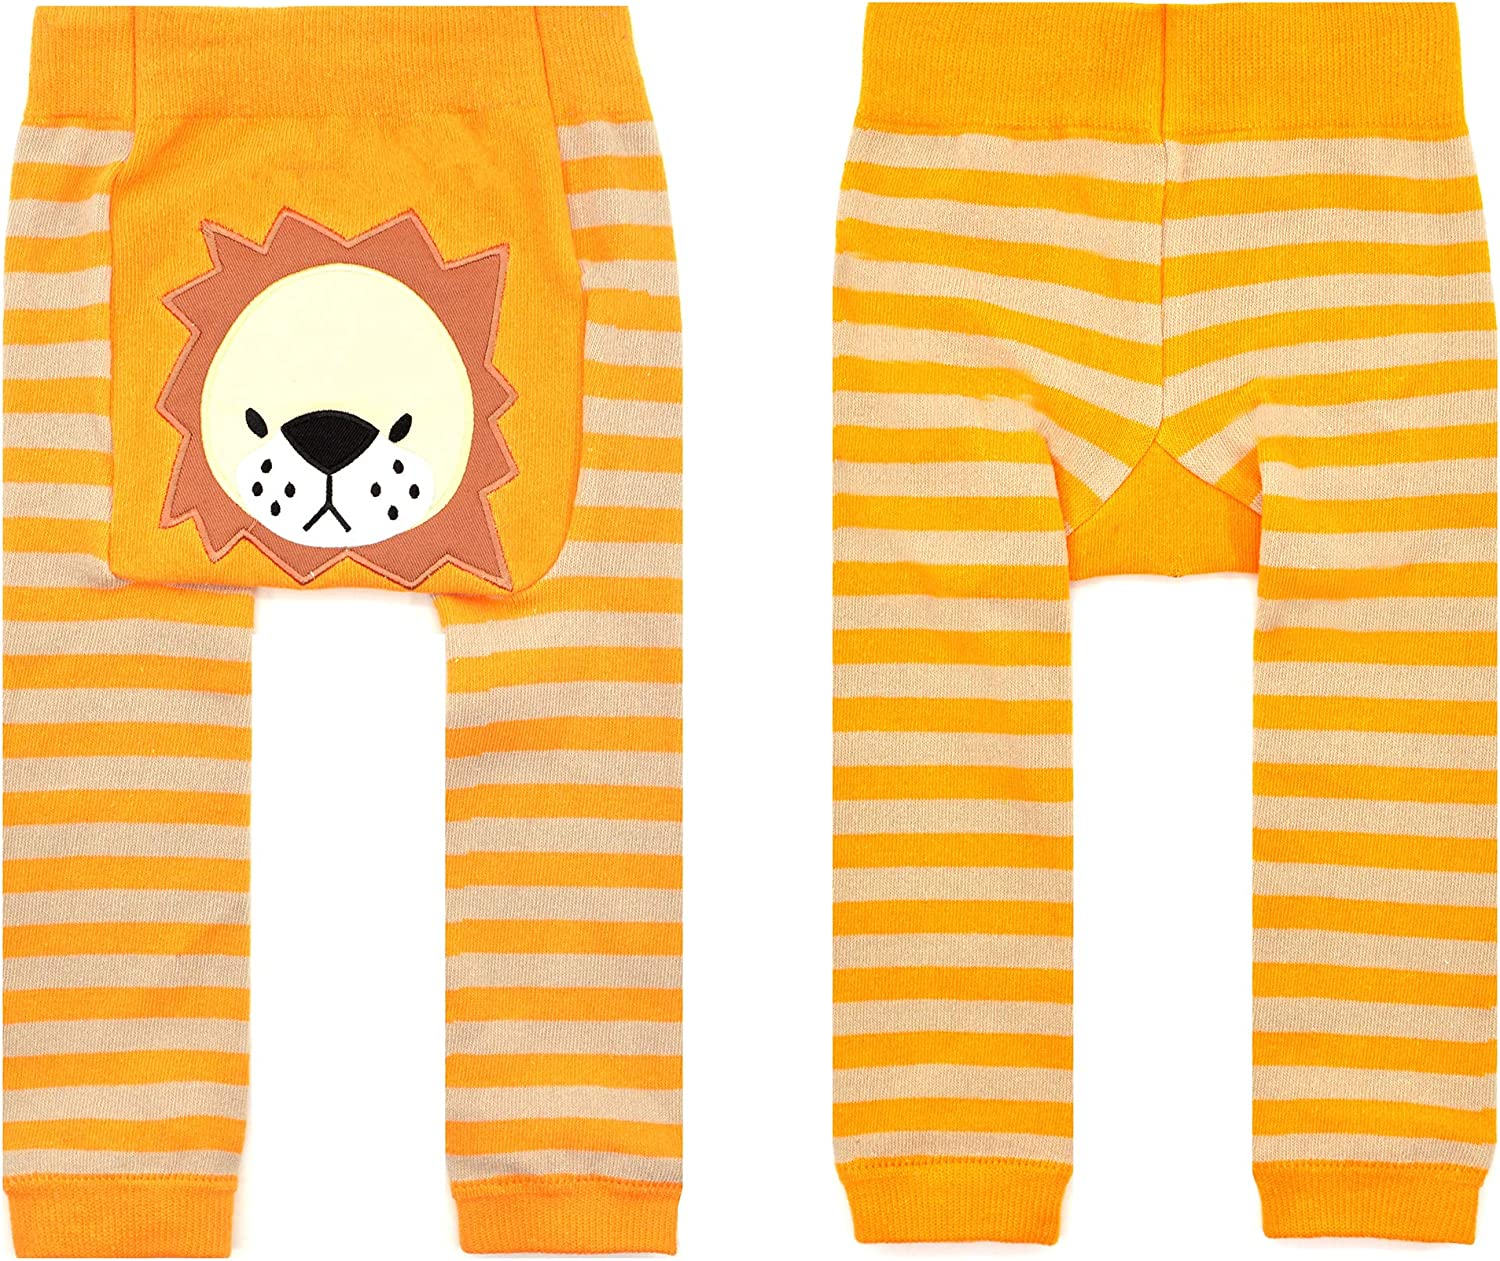 Amazon Com Piero Liventi Baby Boogie Tights Baby Leggings Baby Lion 1 Pair 6 12m Yellow Brown Clothing